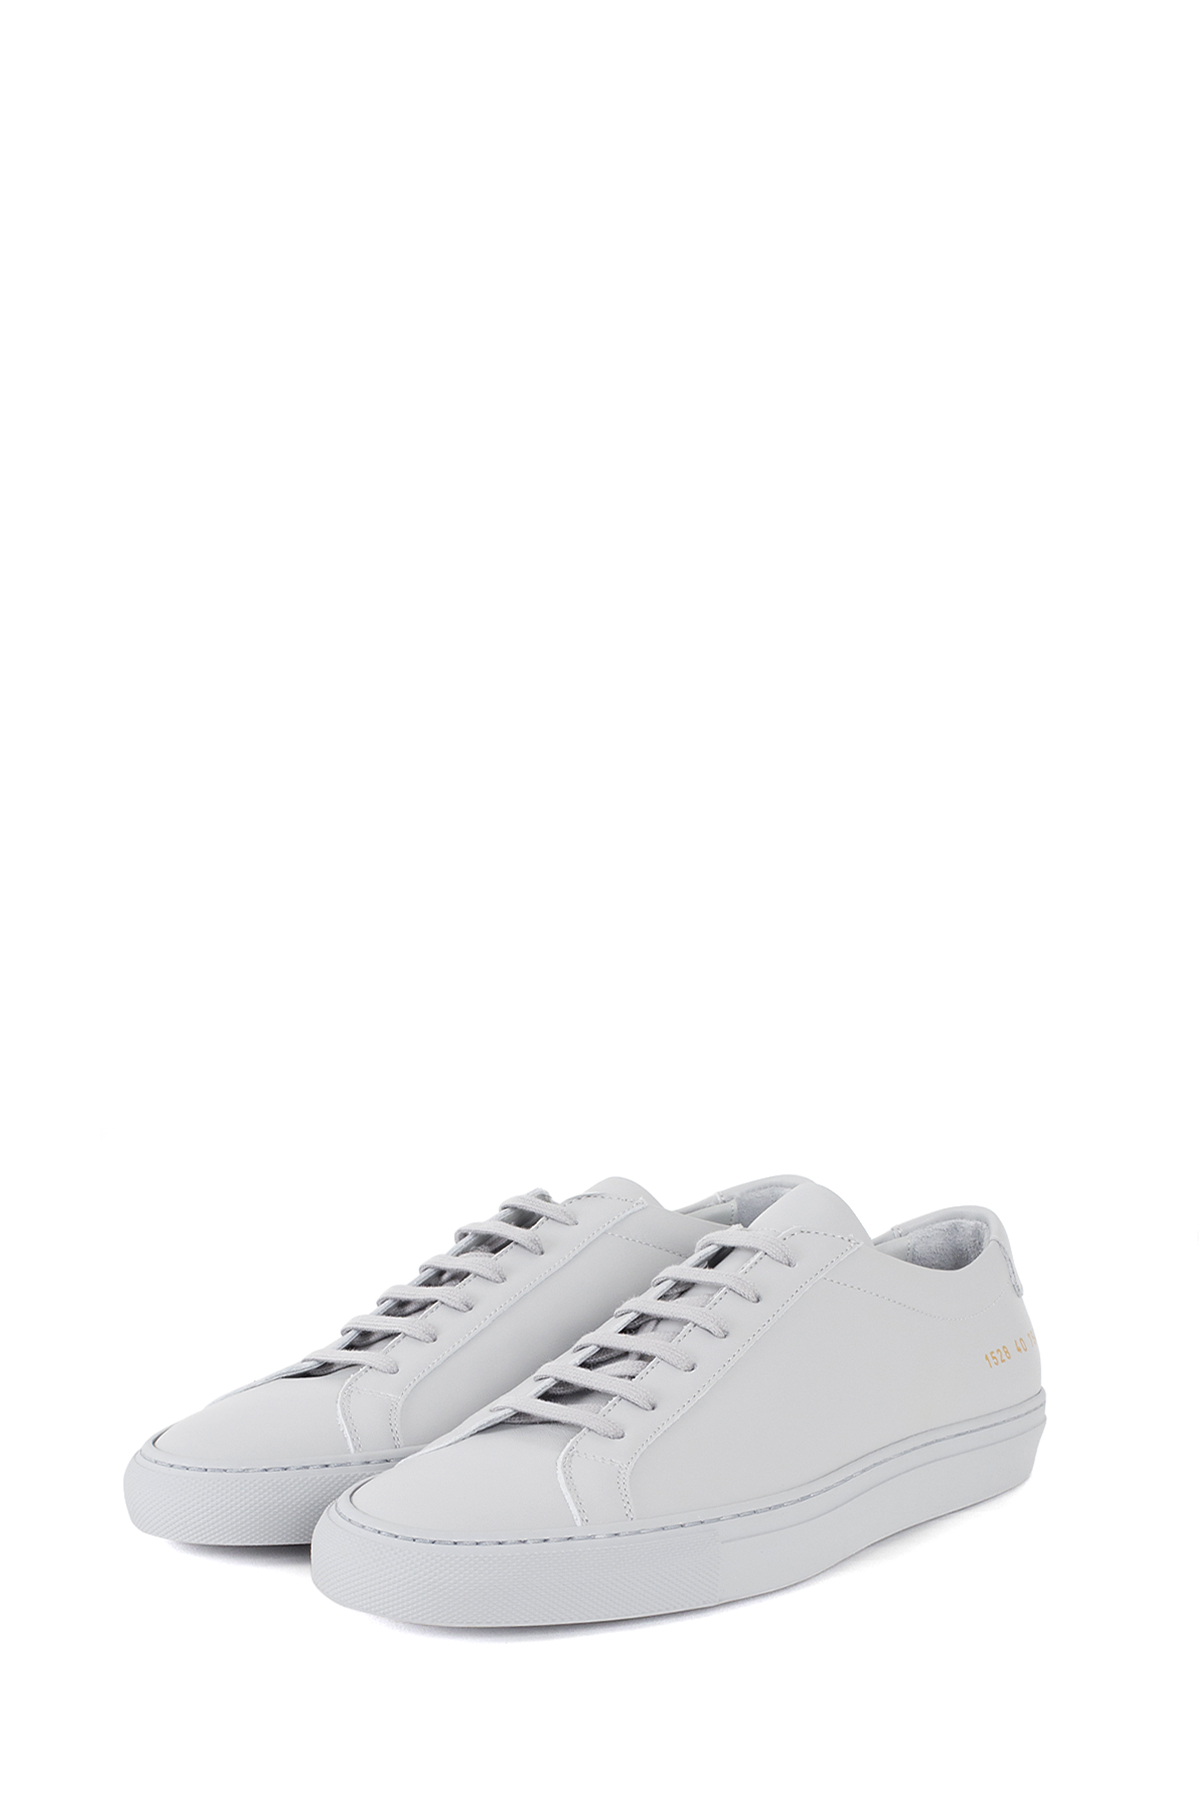 Common Projects : Original Achilles Low (Grey)